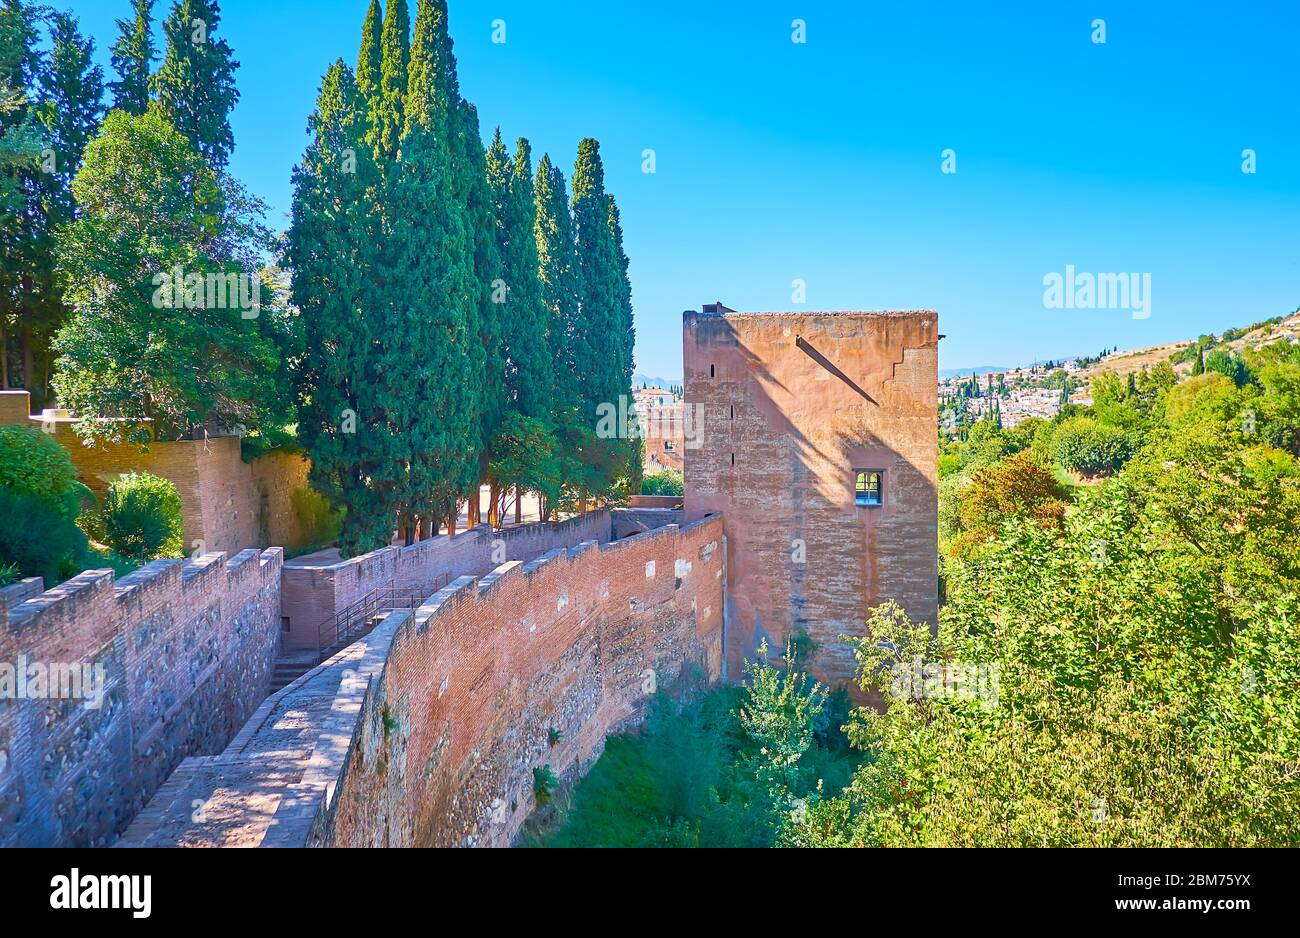 The medieval brick wall and Tower of Captive of Alhambra fortress is surrounded by lush greenery, Granada, Spain Stock Photo